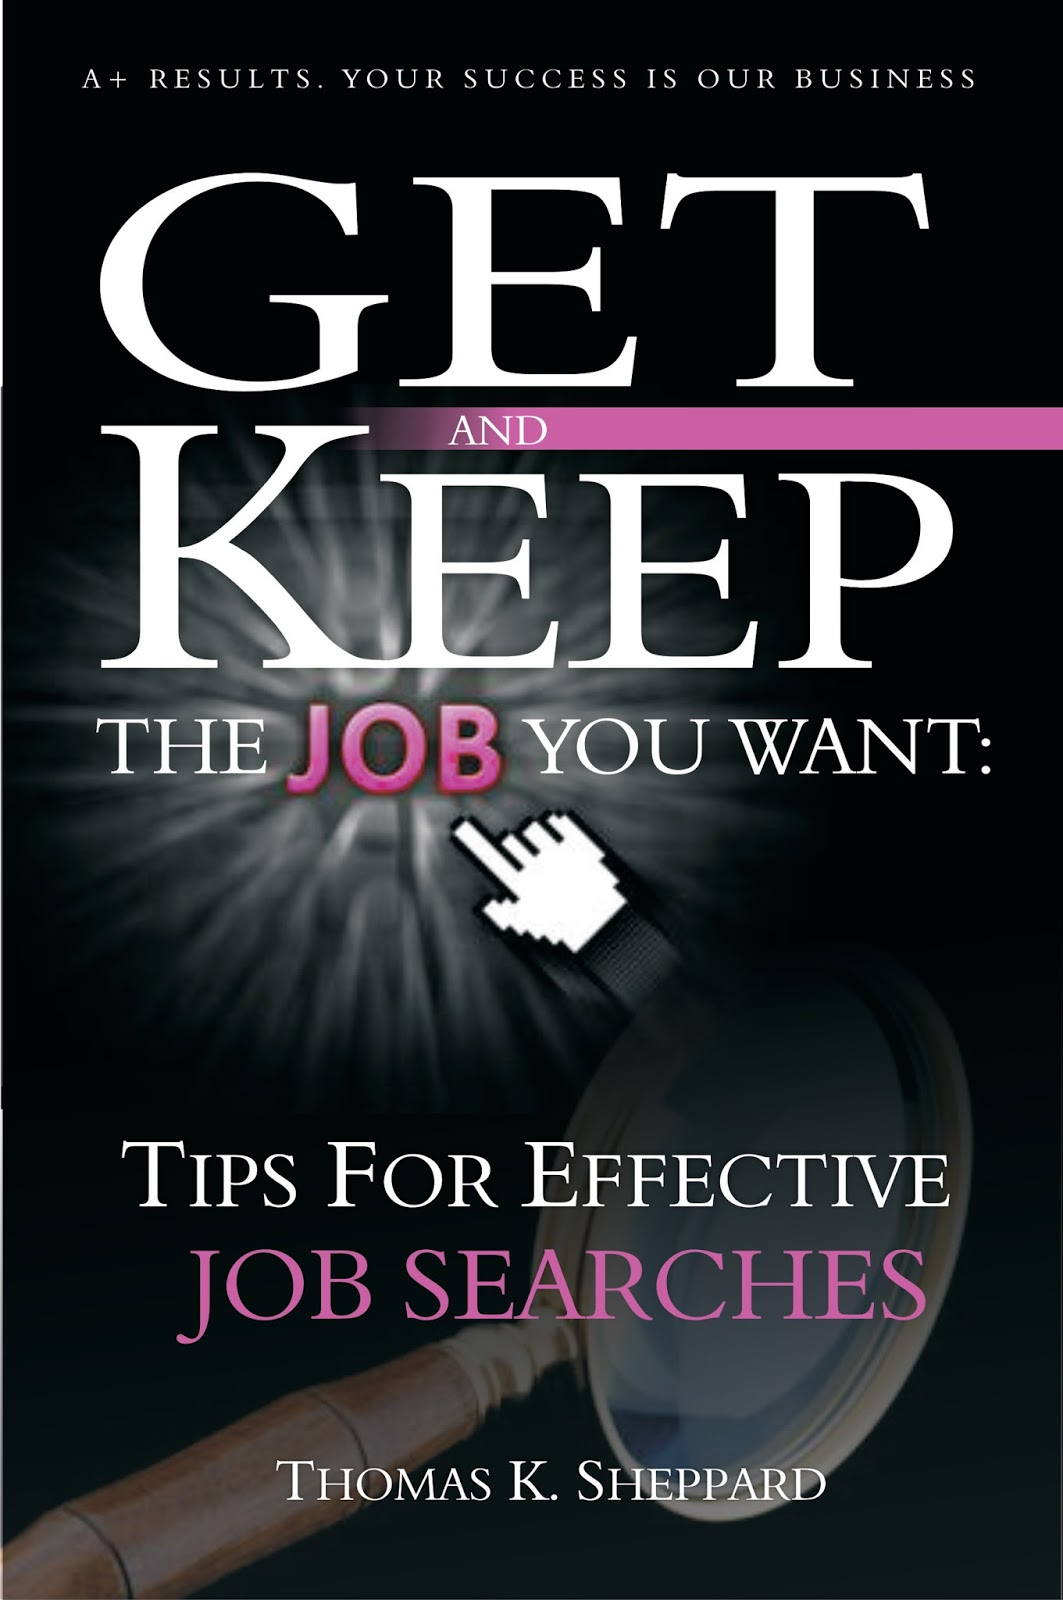 get the job you want products and services tips for effective job searches to help you figure out how to maximize your ability to evaluate and respond to job leads